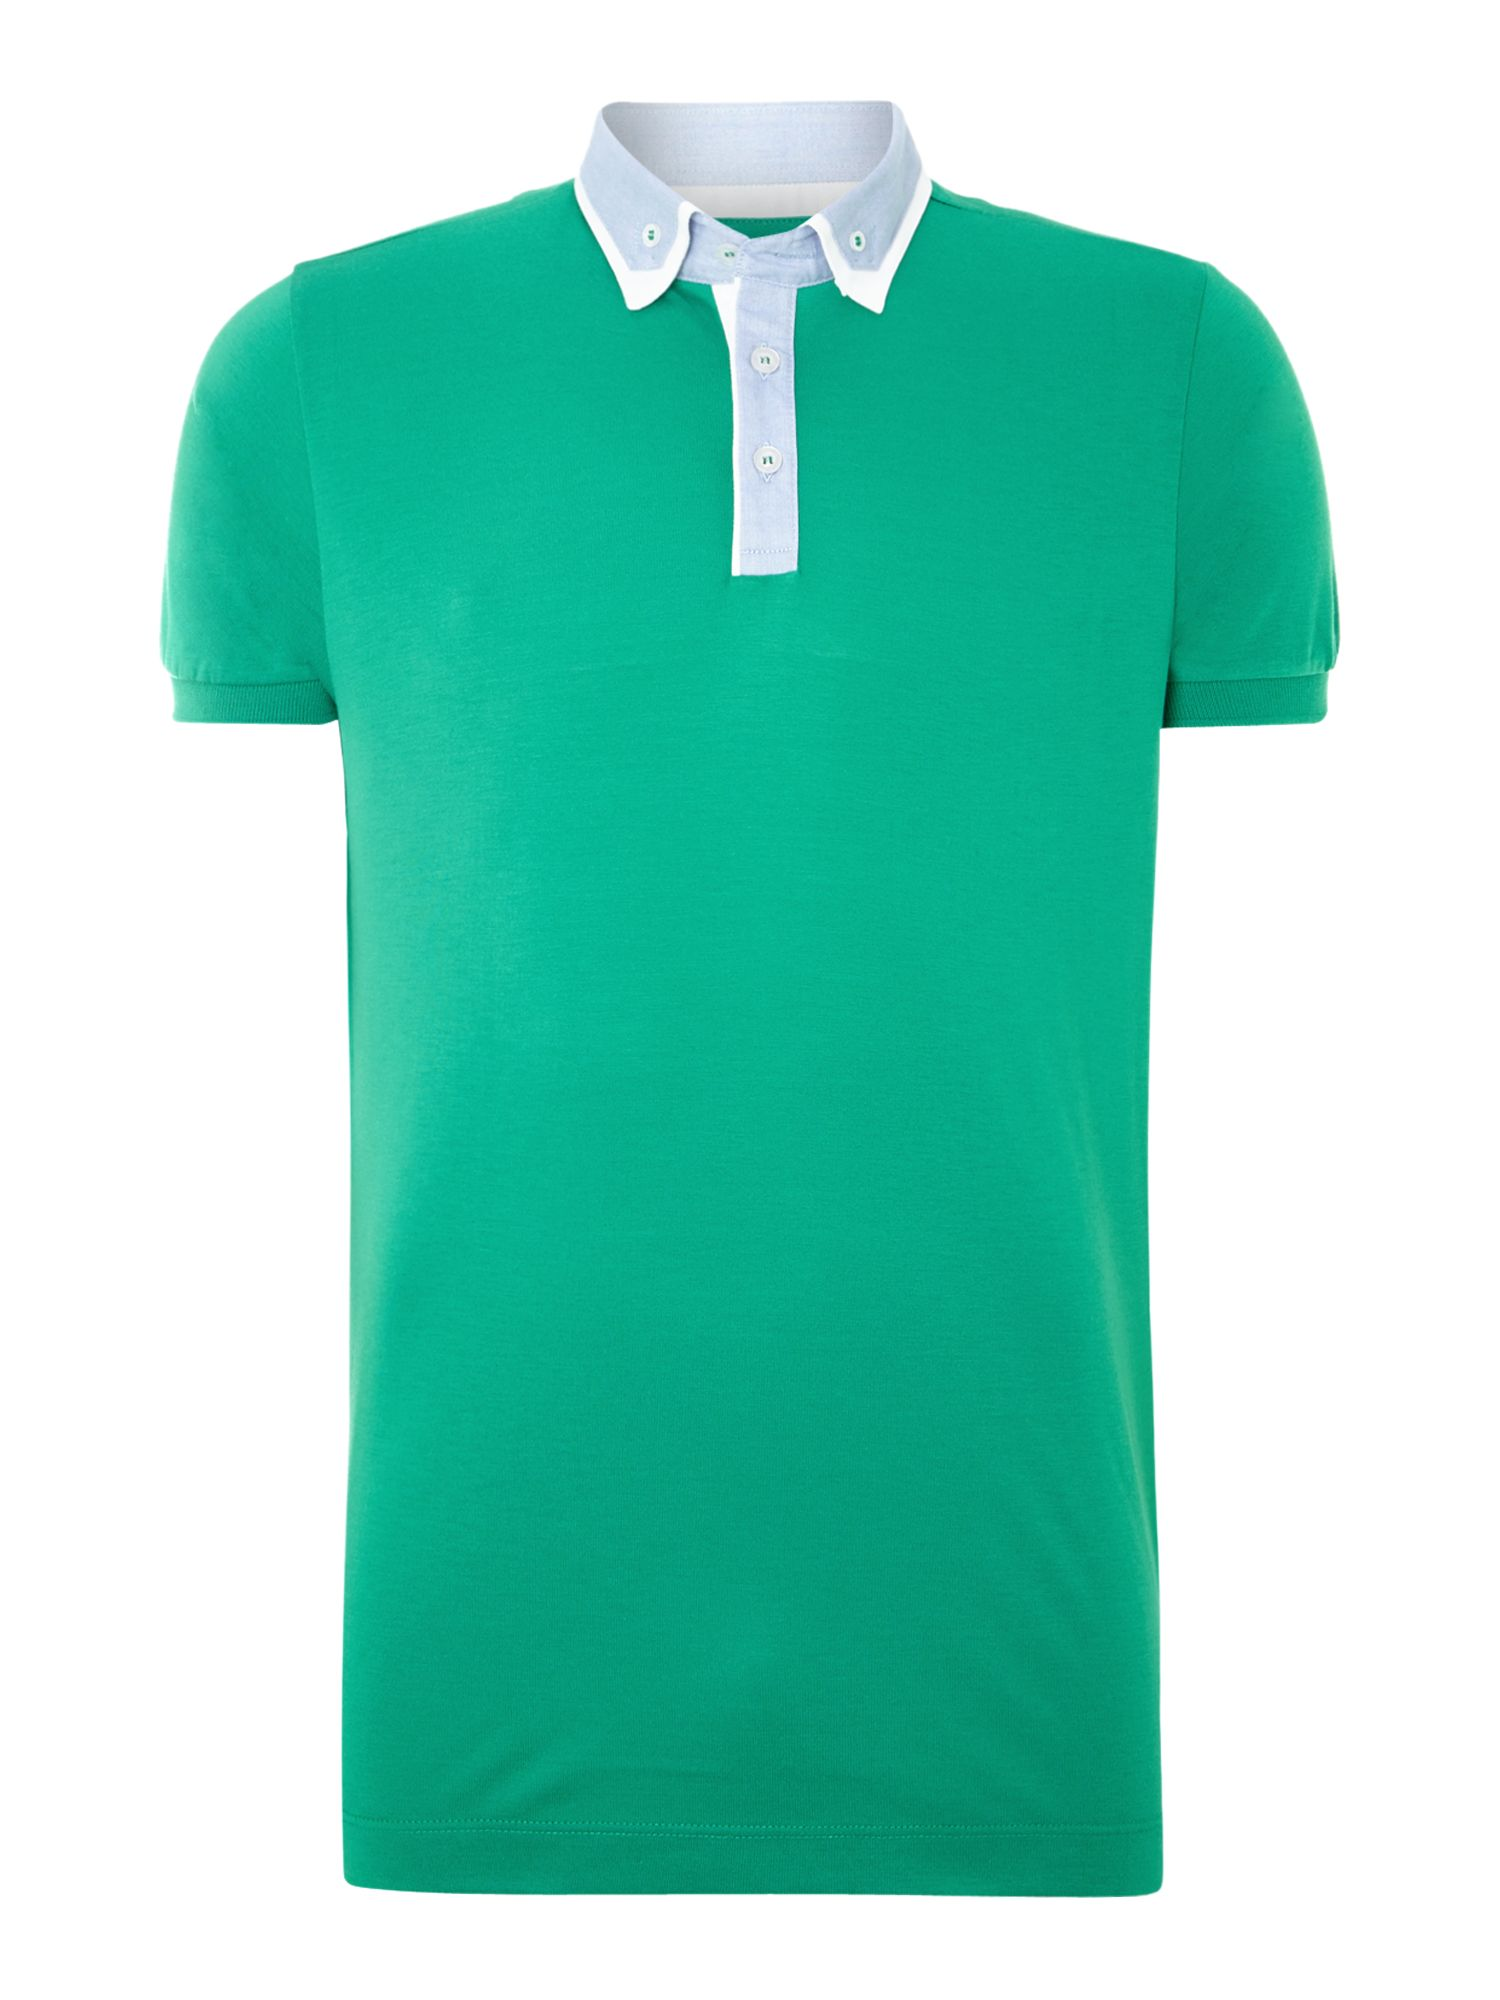 Regular fit polo shirt with collar